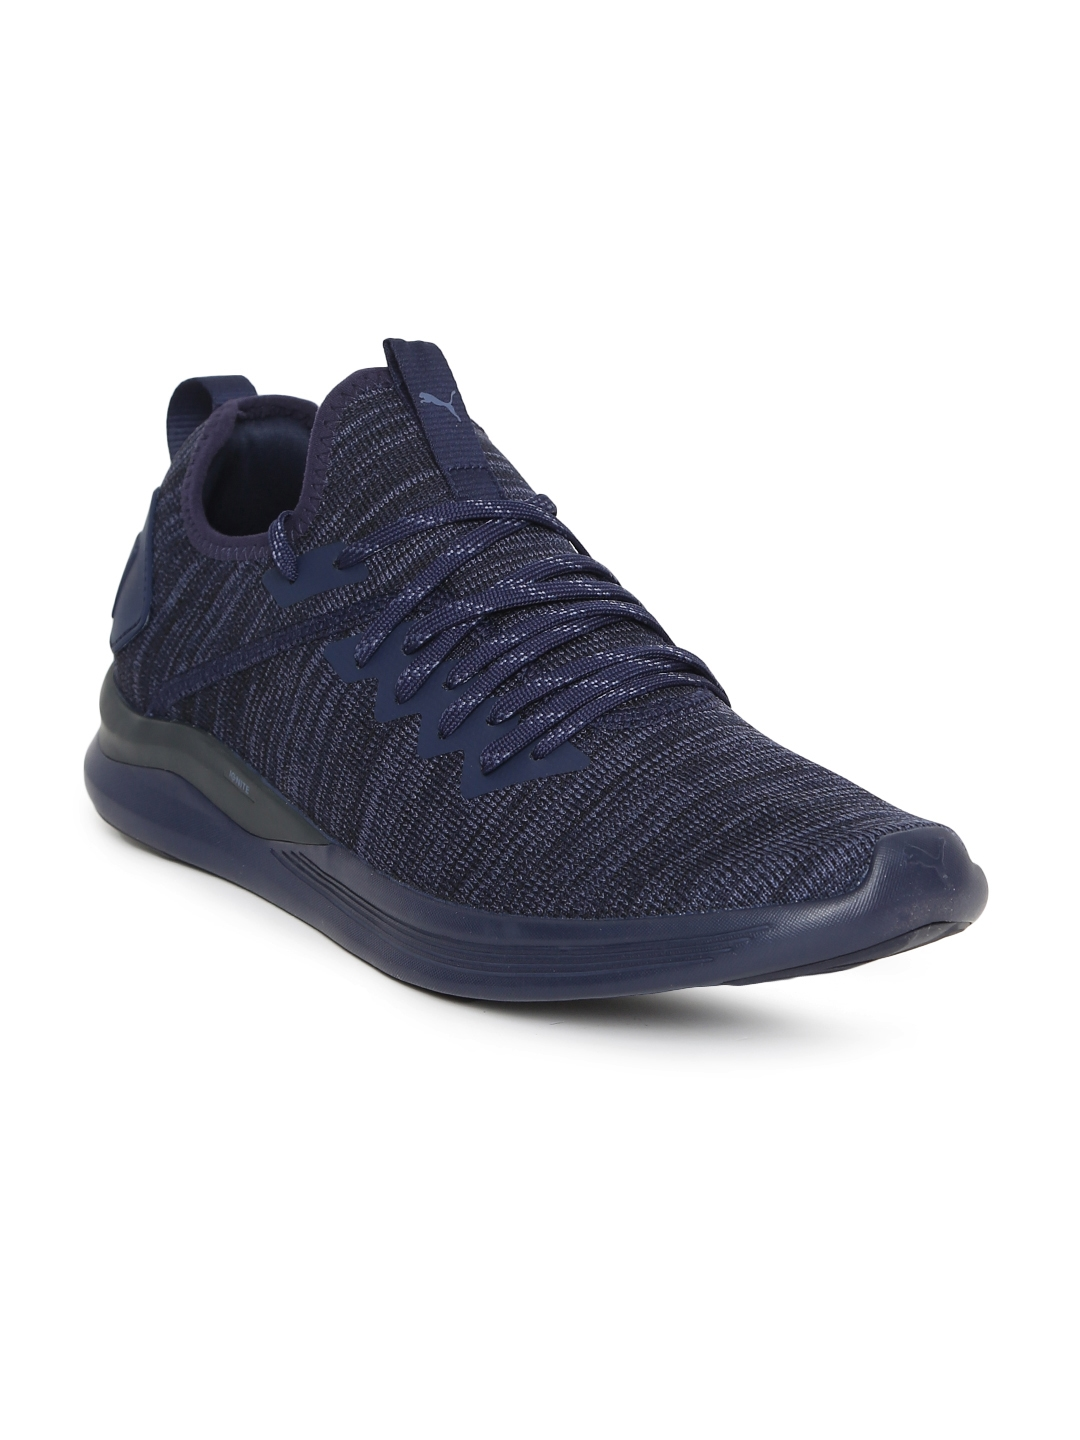 new style 4a7a0 f6043 Puma Men Navy Blue IGNITE Flash evoKNIT Running Shoes